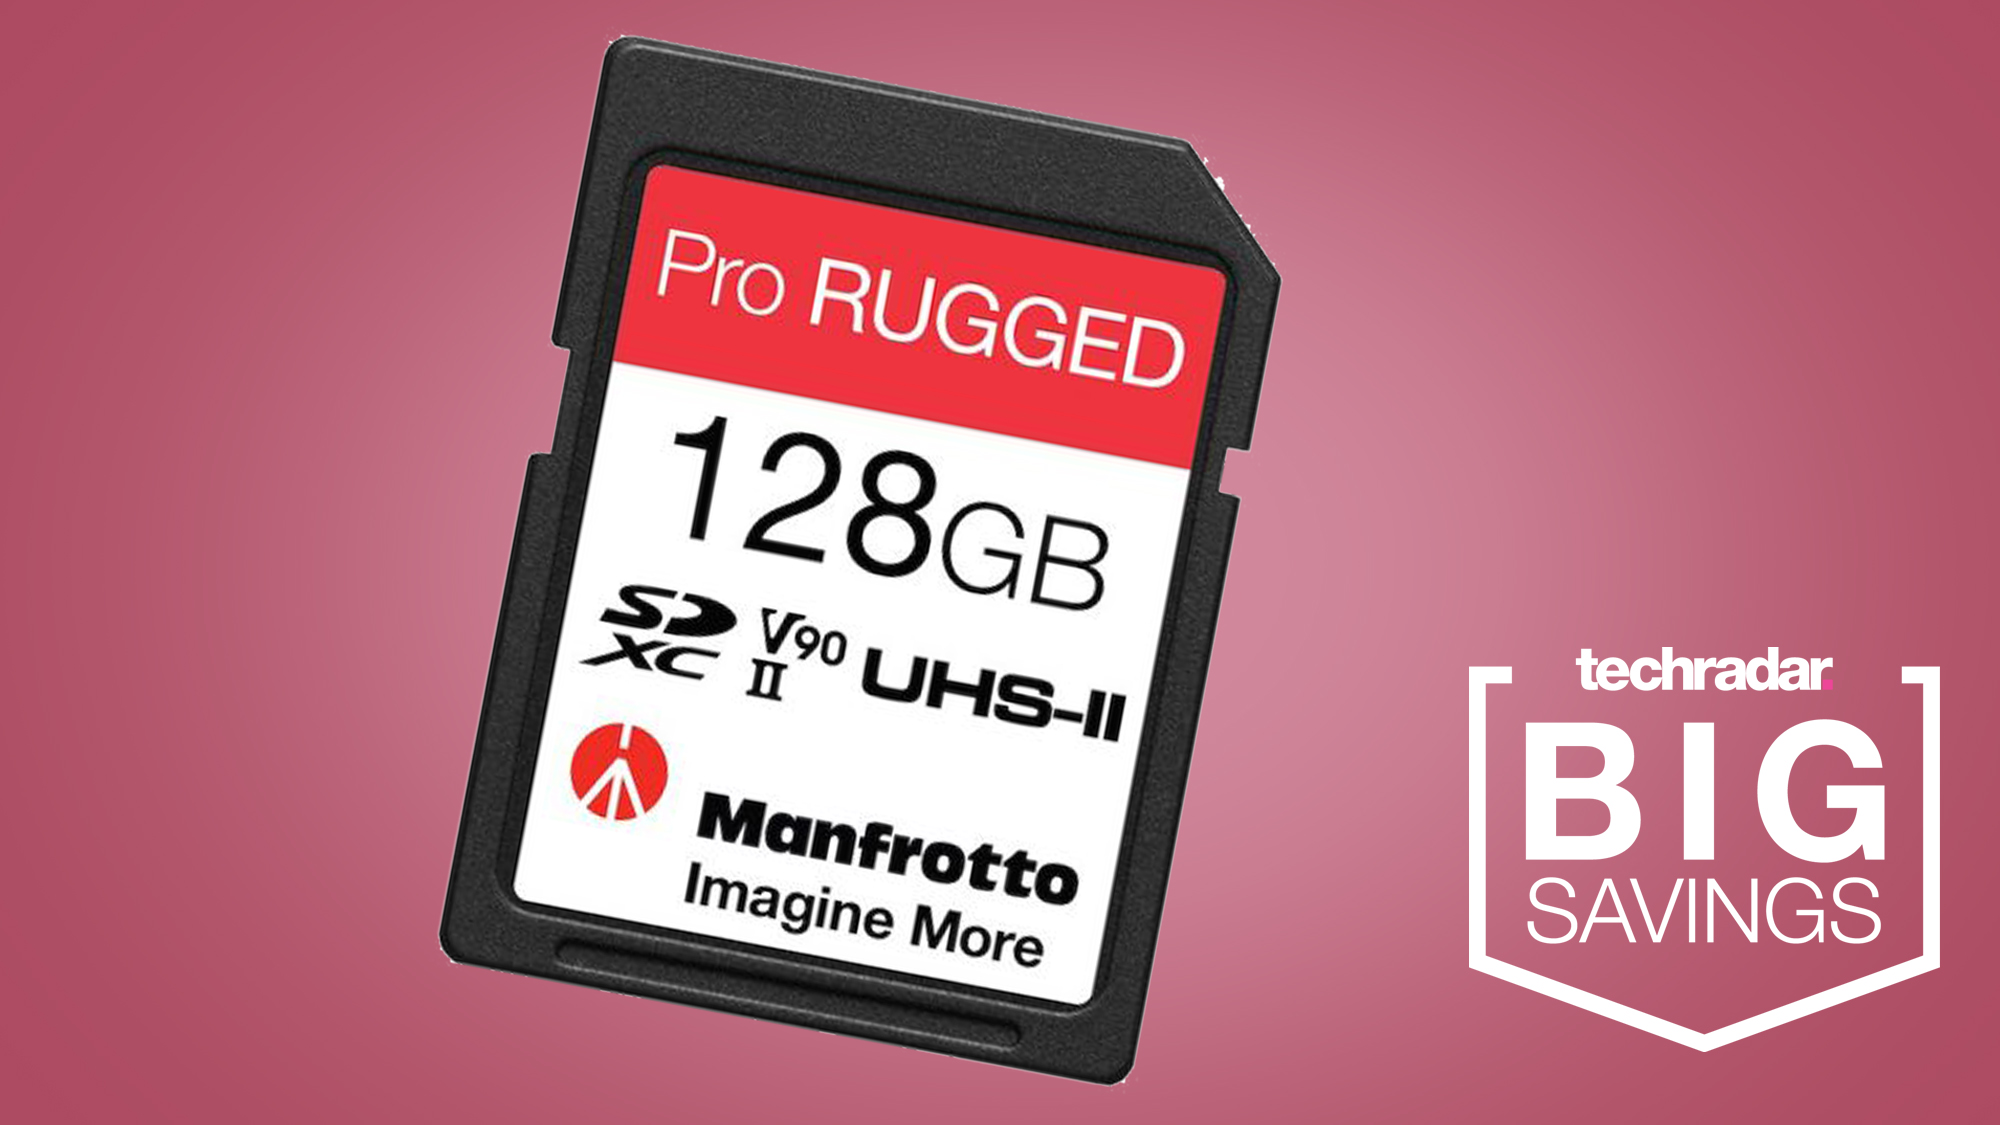 Manfrotto's new waterproof SD cards are a serious bargain at 50% off